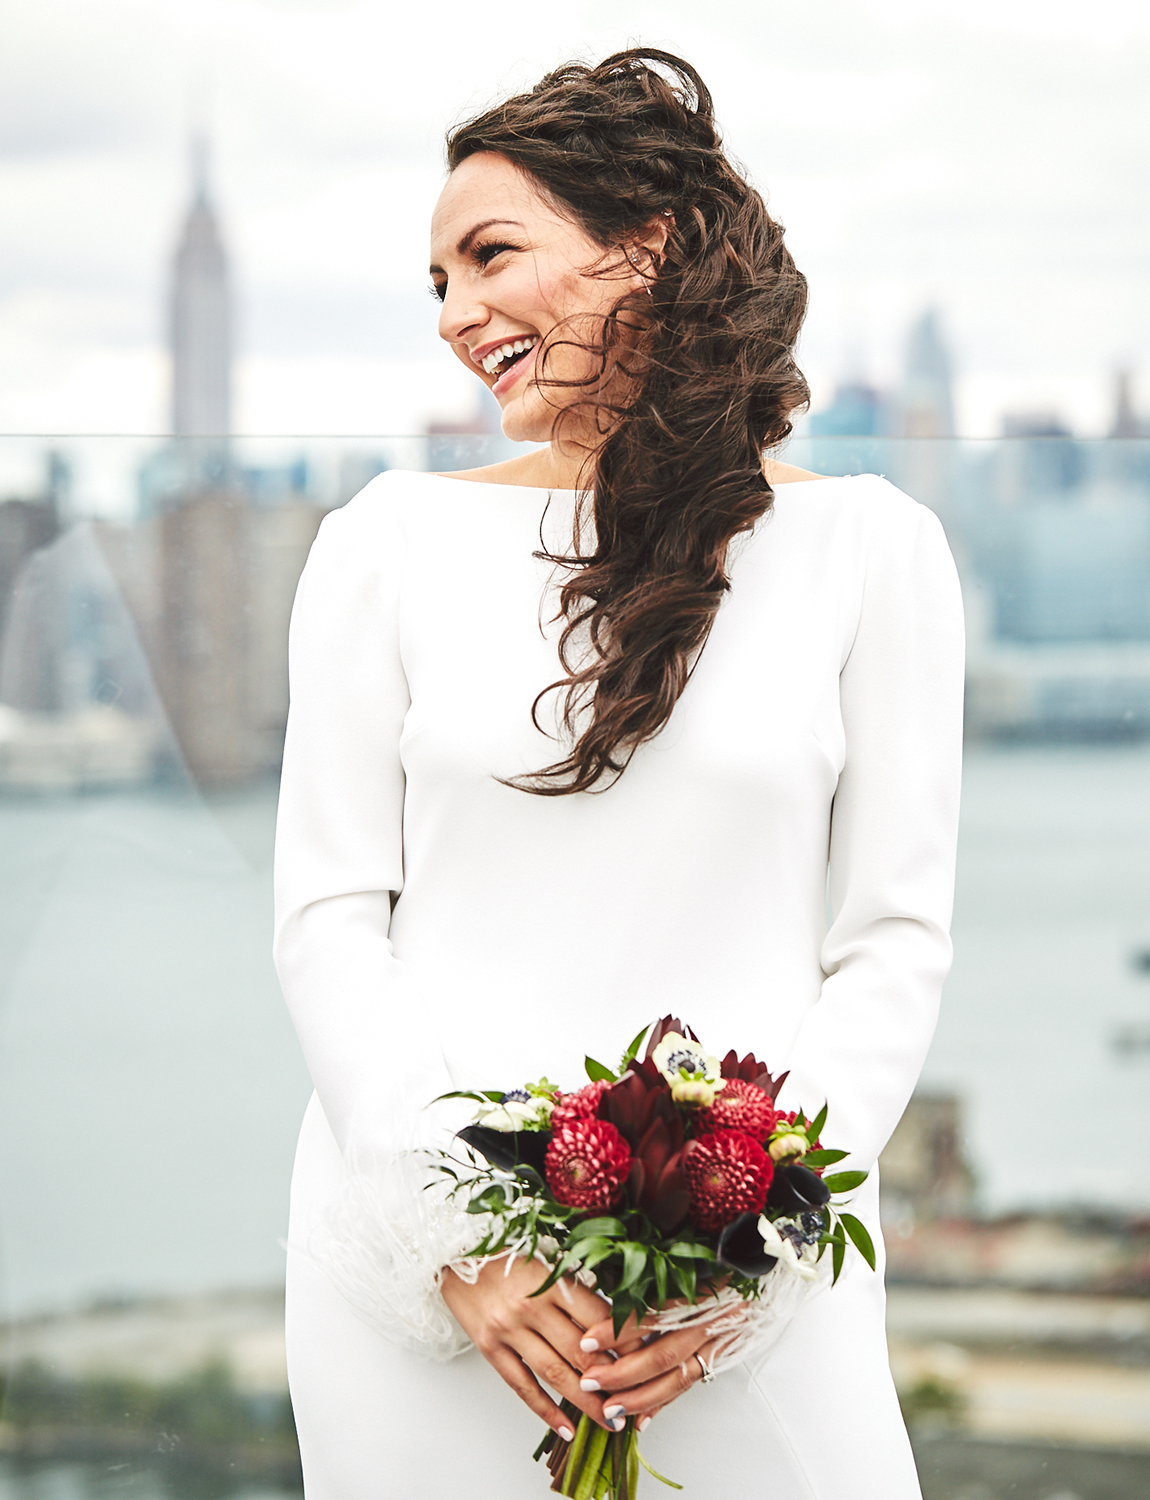 170930_WilliamValeWeddingPhotography_BrooklynWeddingPhotographer_By_BriJohnsonWeddings_0052.jpg